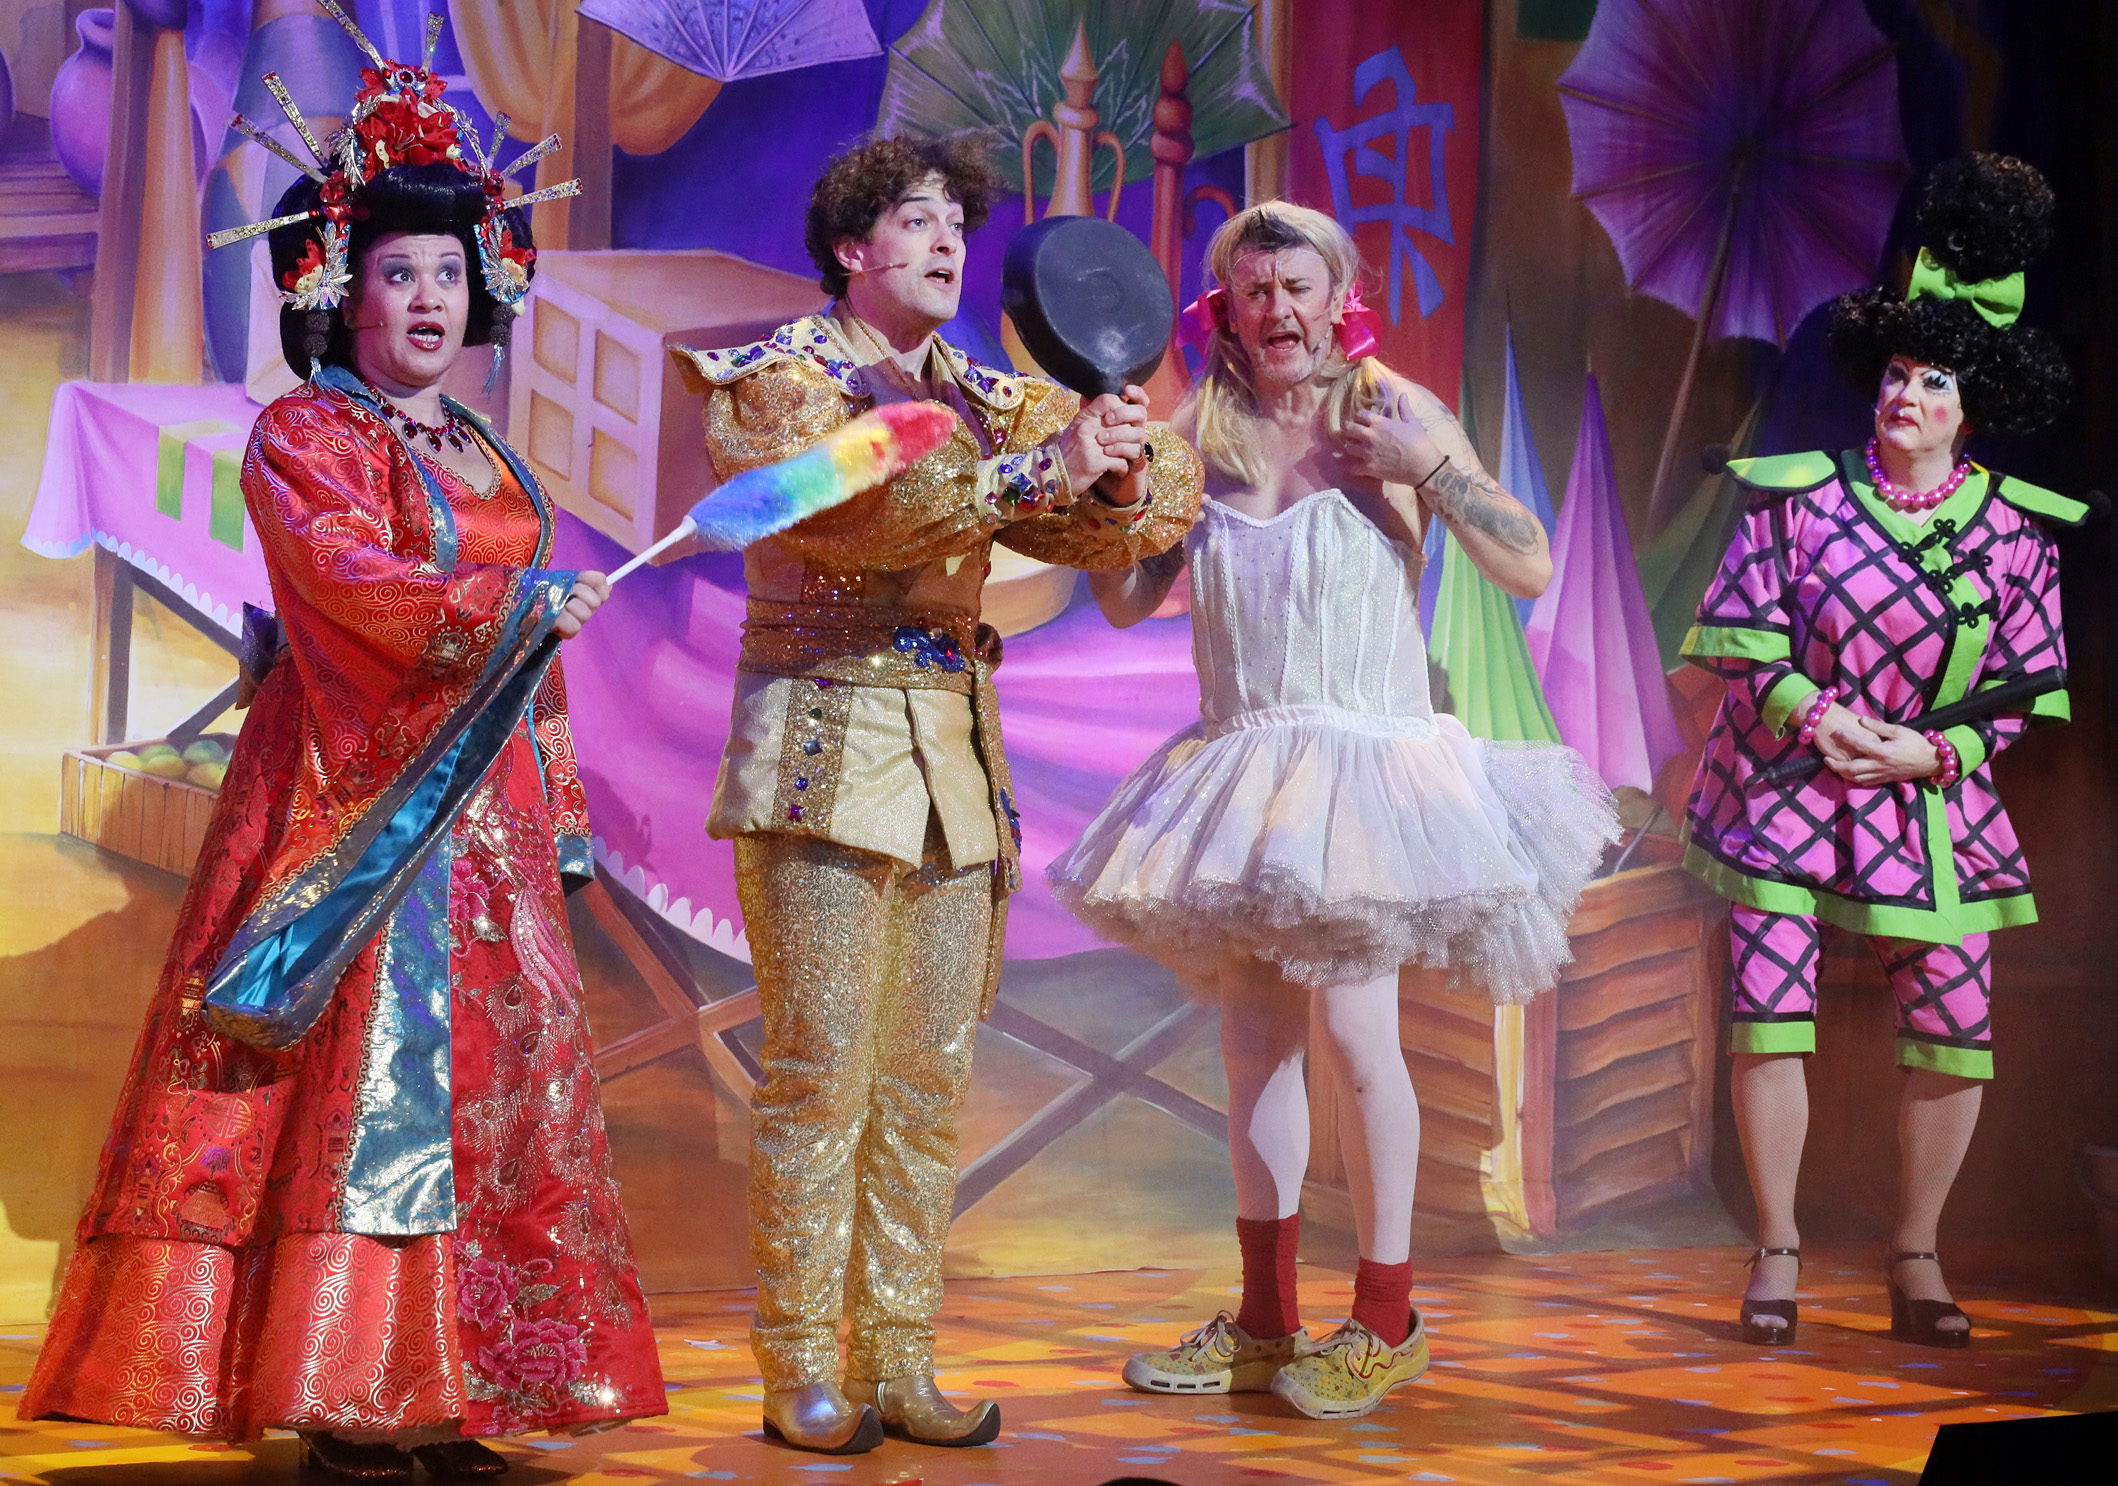 Aladdin at Milton Keynes Theatre, Christmas 2019. Debra Michaels as The Empress, Lee Mead as Aladdin, Joe Pasquale as Wishee Washee and David Robbins as Widow Twankey.